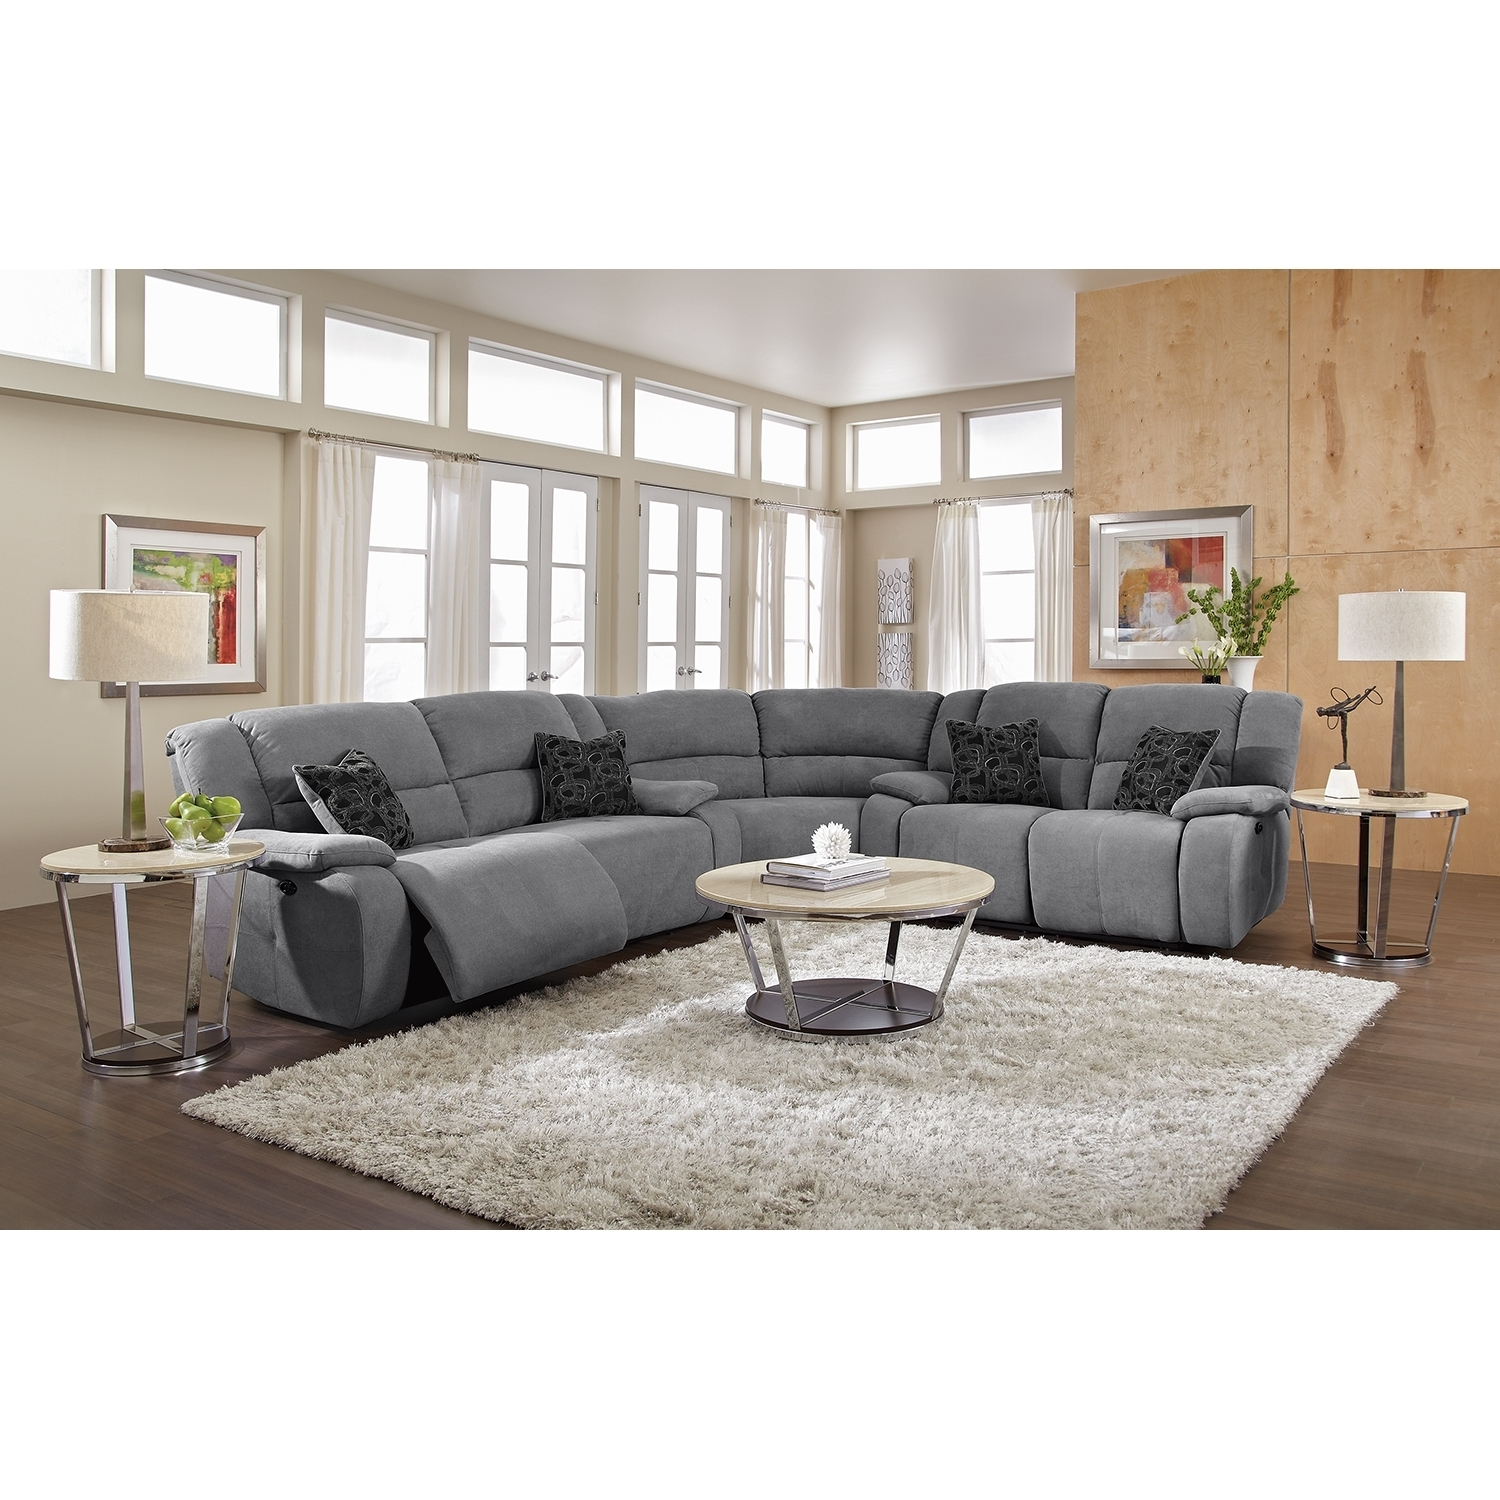 Most Current Reclining Sectional Leather Sectional Grey Sectional Sectionals Within Reclining Sectionals With Chaise (View 8 of 15)